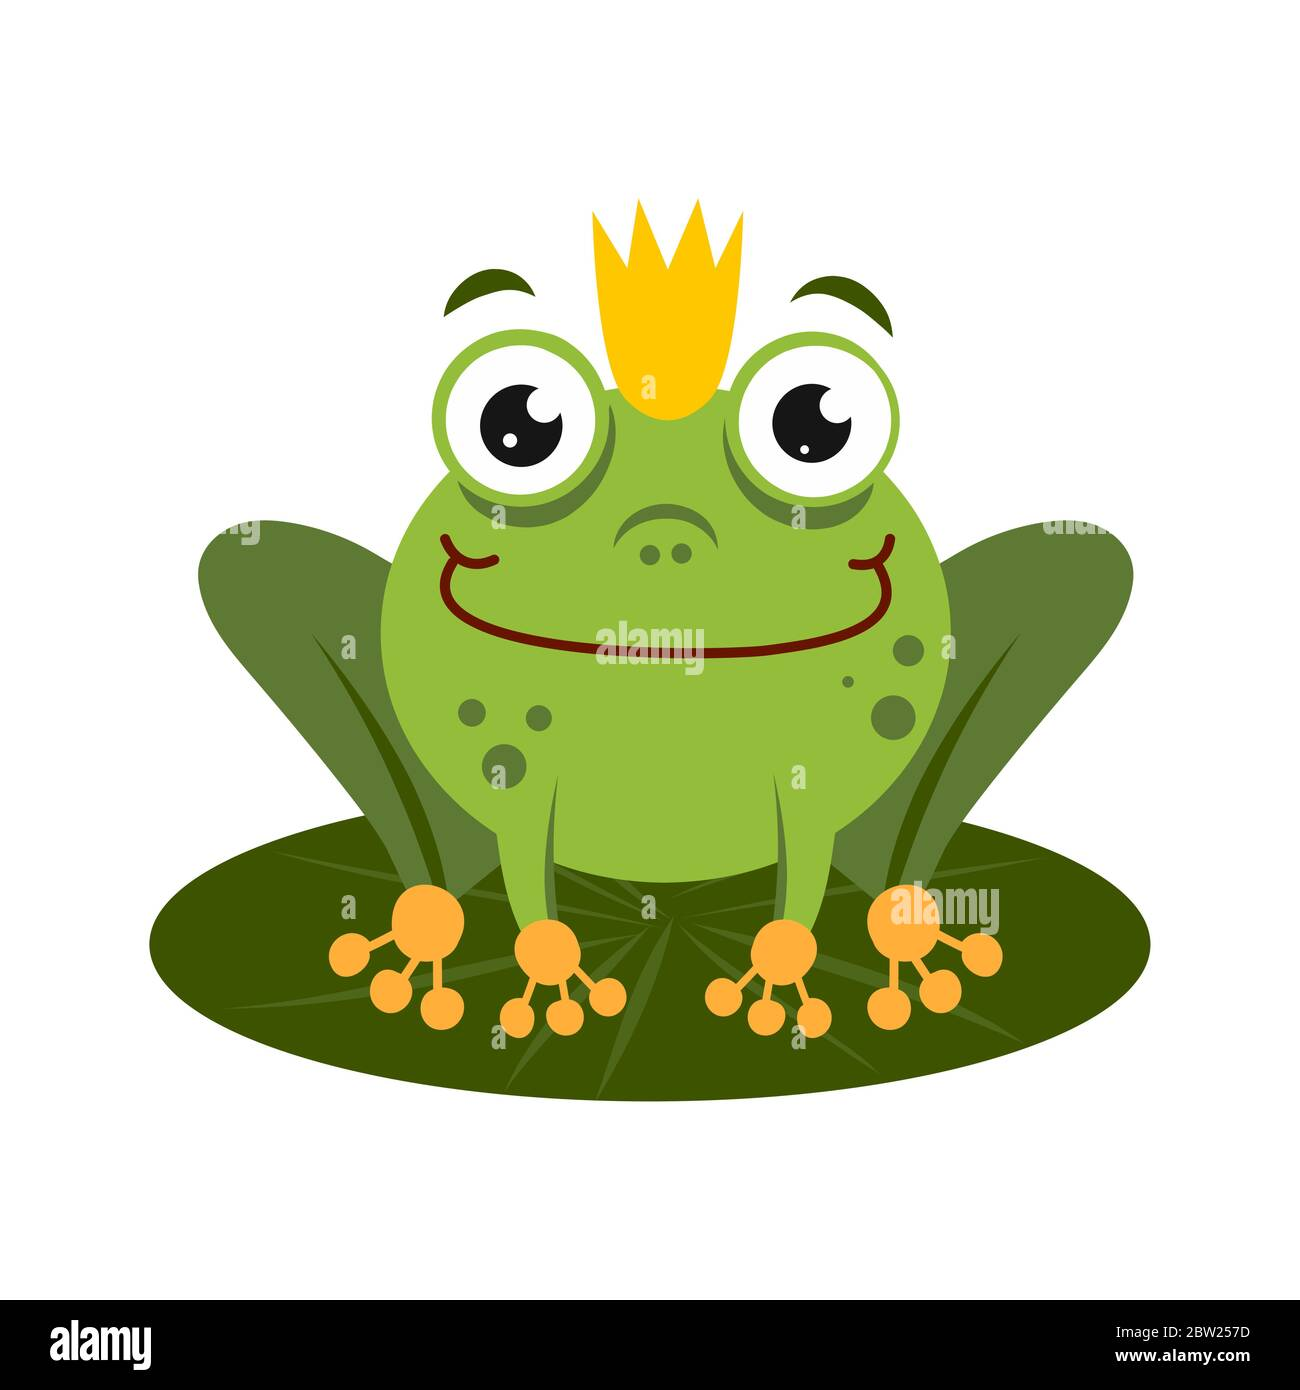 Green King Frog Sitting On Lotus Leaf Cartoon Character Isolated On White Background Frog Prince With Crown Stock Vector Image Art Alamy It can be obtained in the ancient jungle. https www alamy com green king frog sitting on lotus leaf cartoon character isolated on white background frog prince with crown image359621793 html